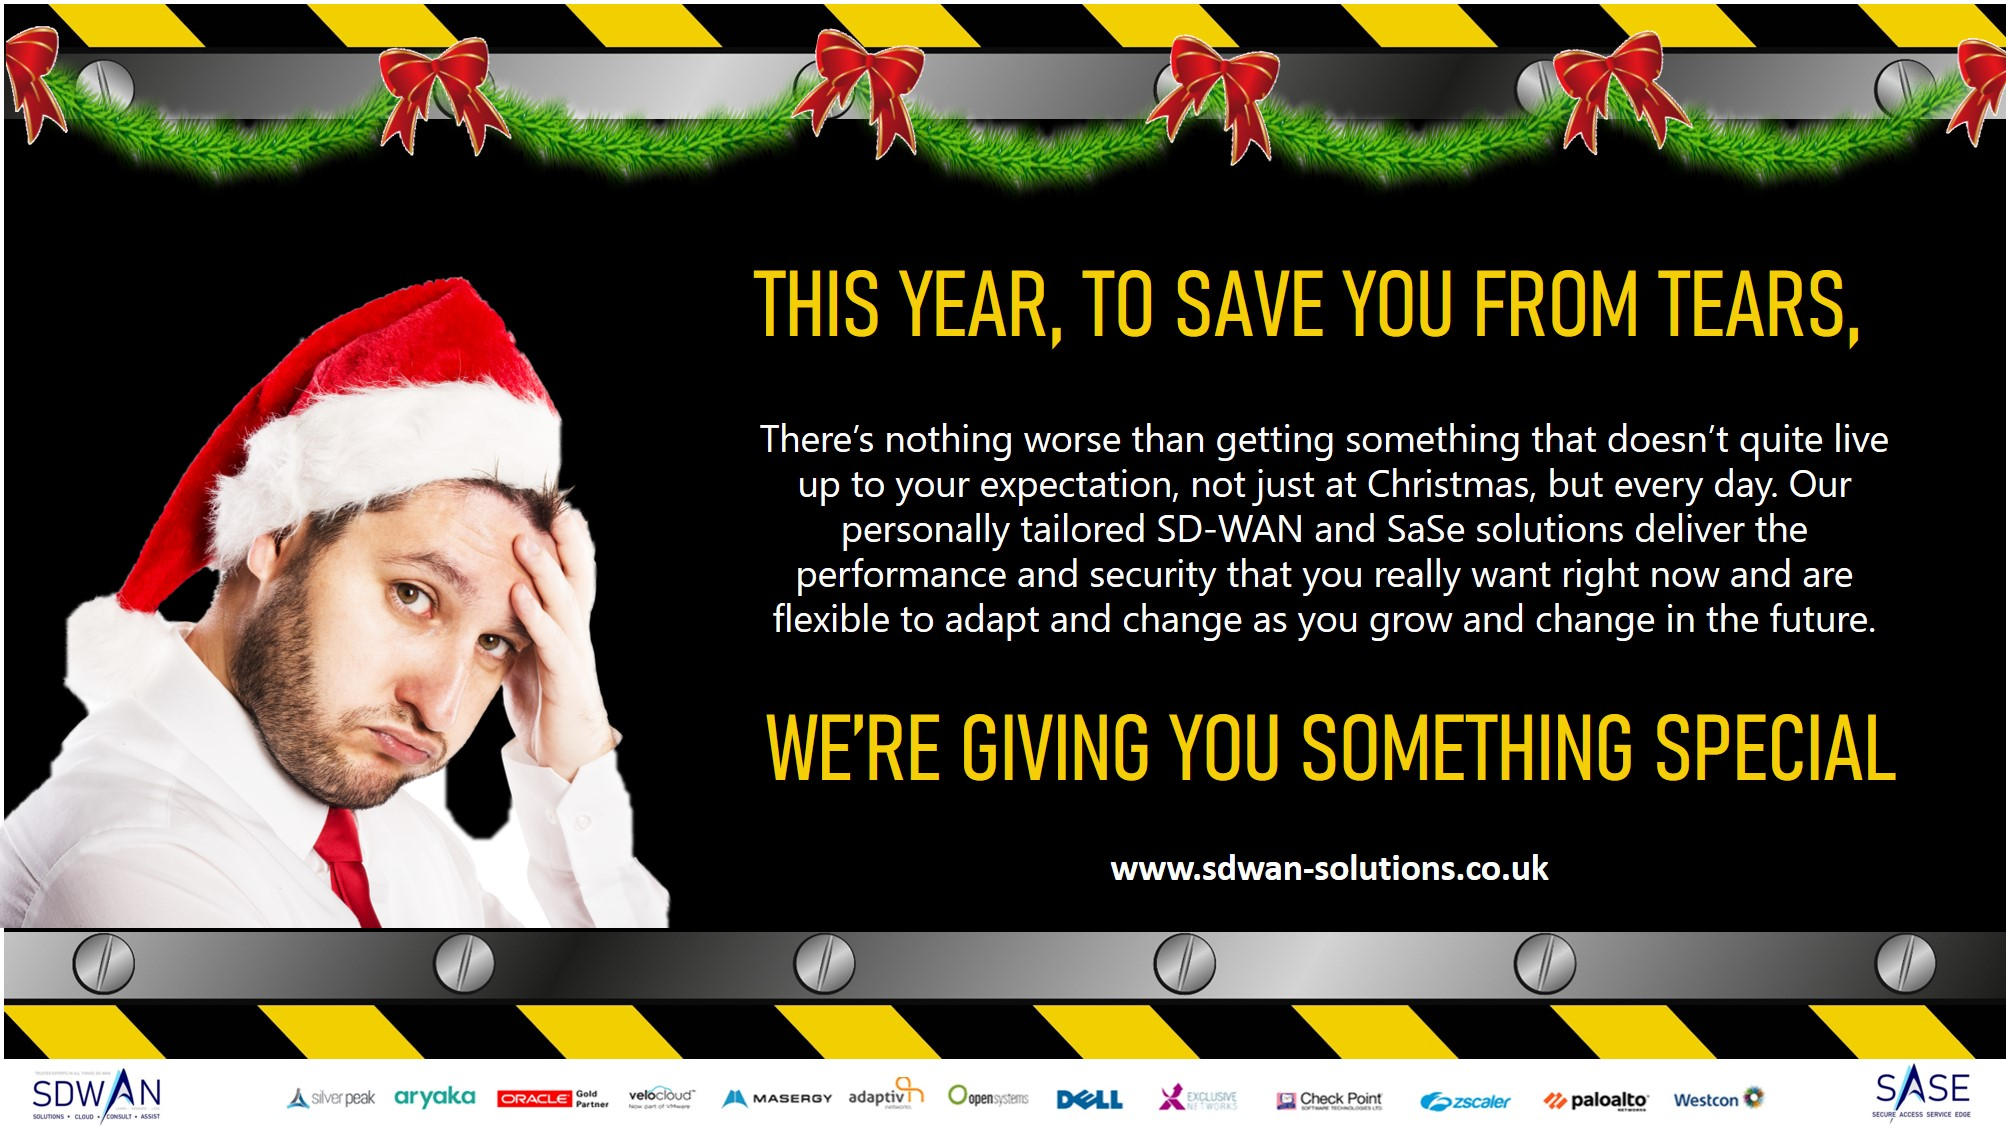 SD-WAN gives your exactly what you want, not just at Christmas